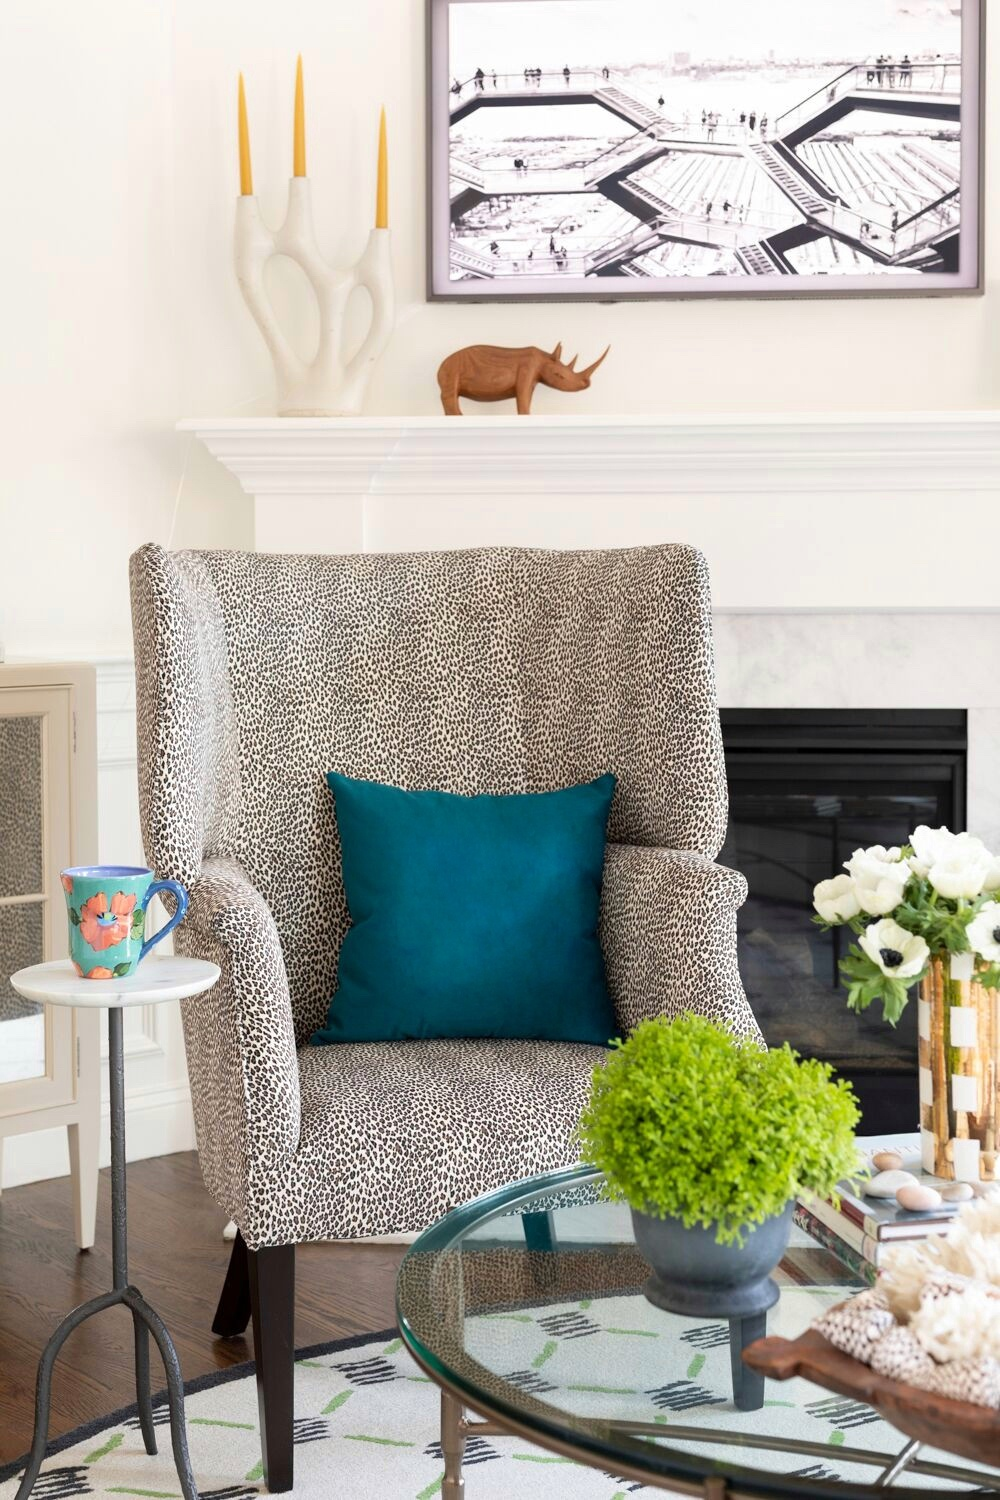 animal print chair and blue pillow